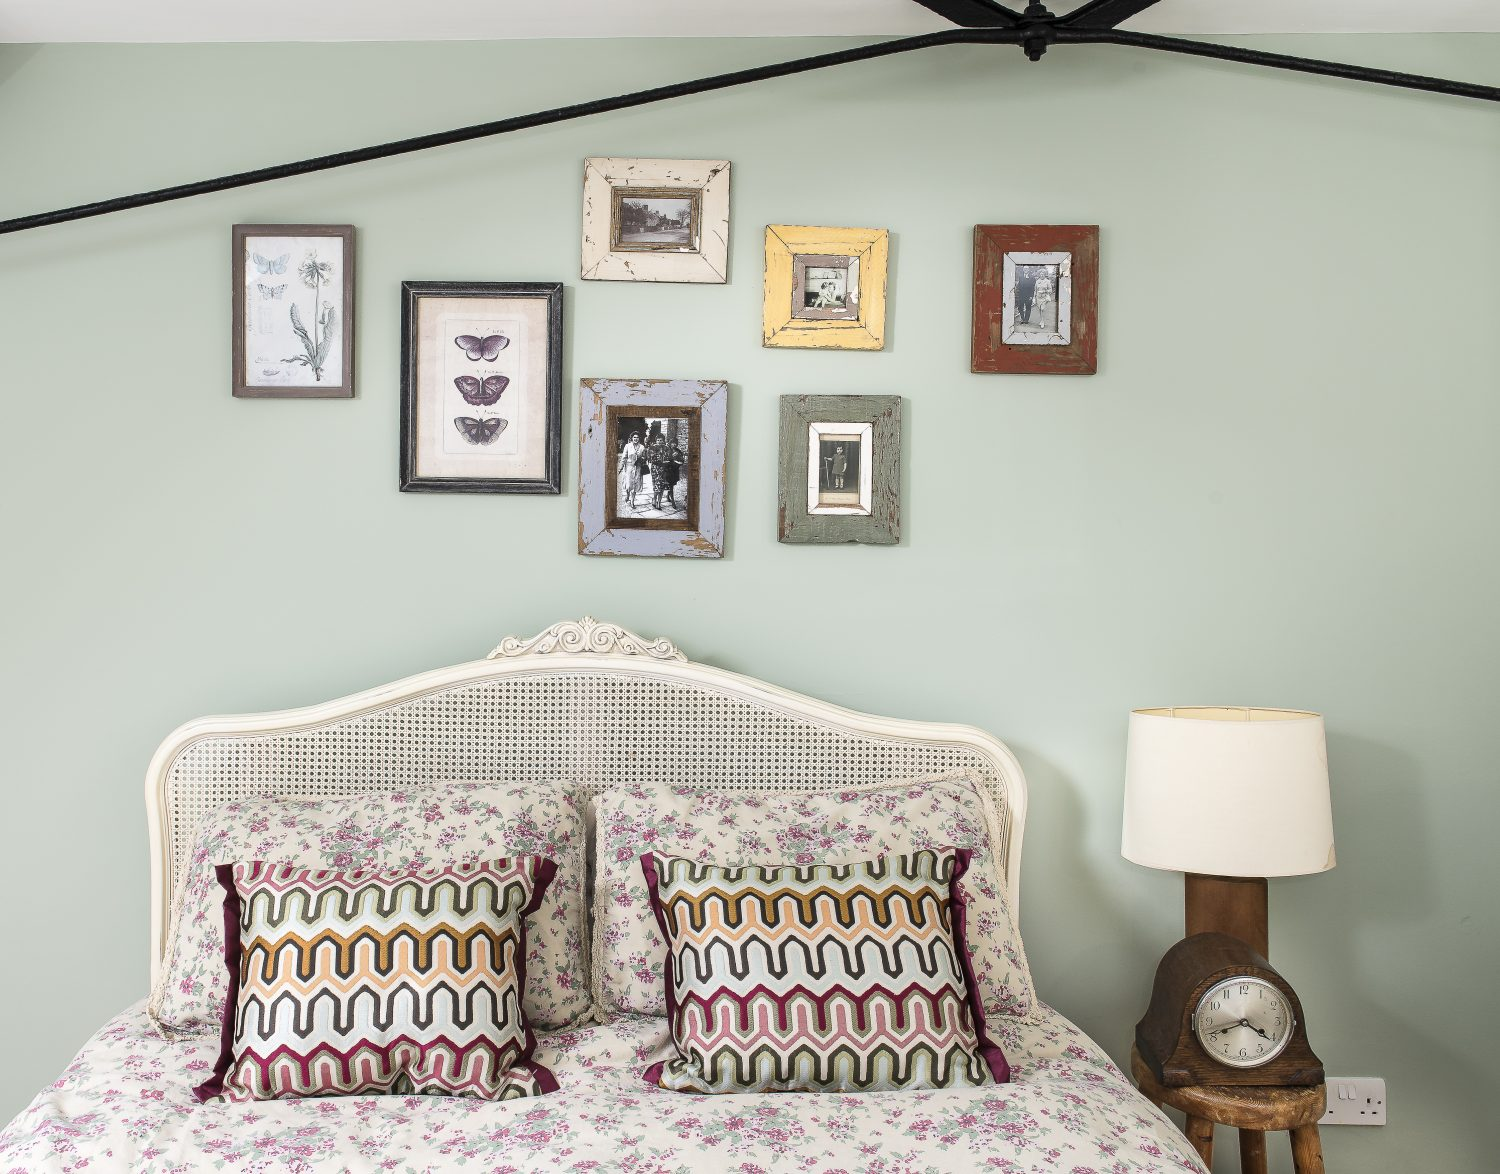 In the guest bedroom Rachel has revamped old family photos in old frames